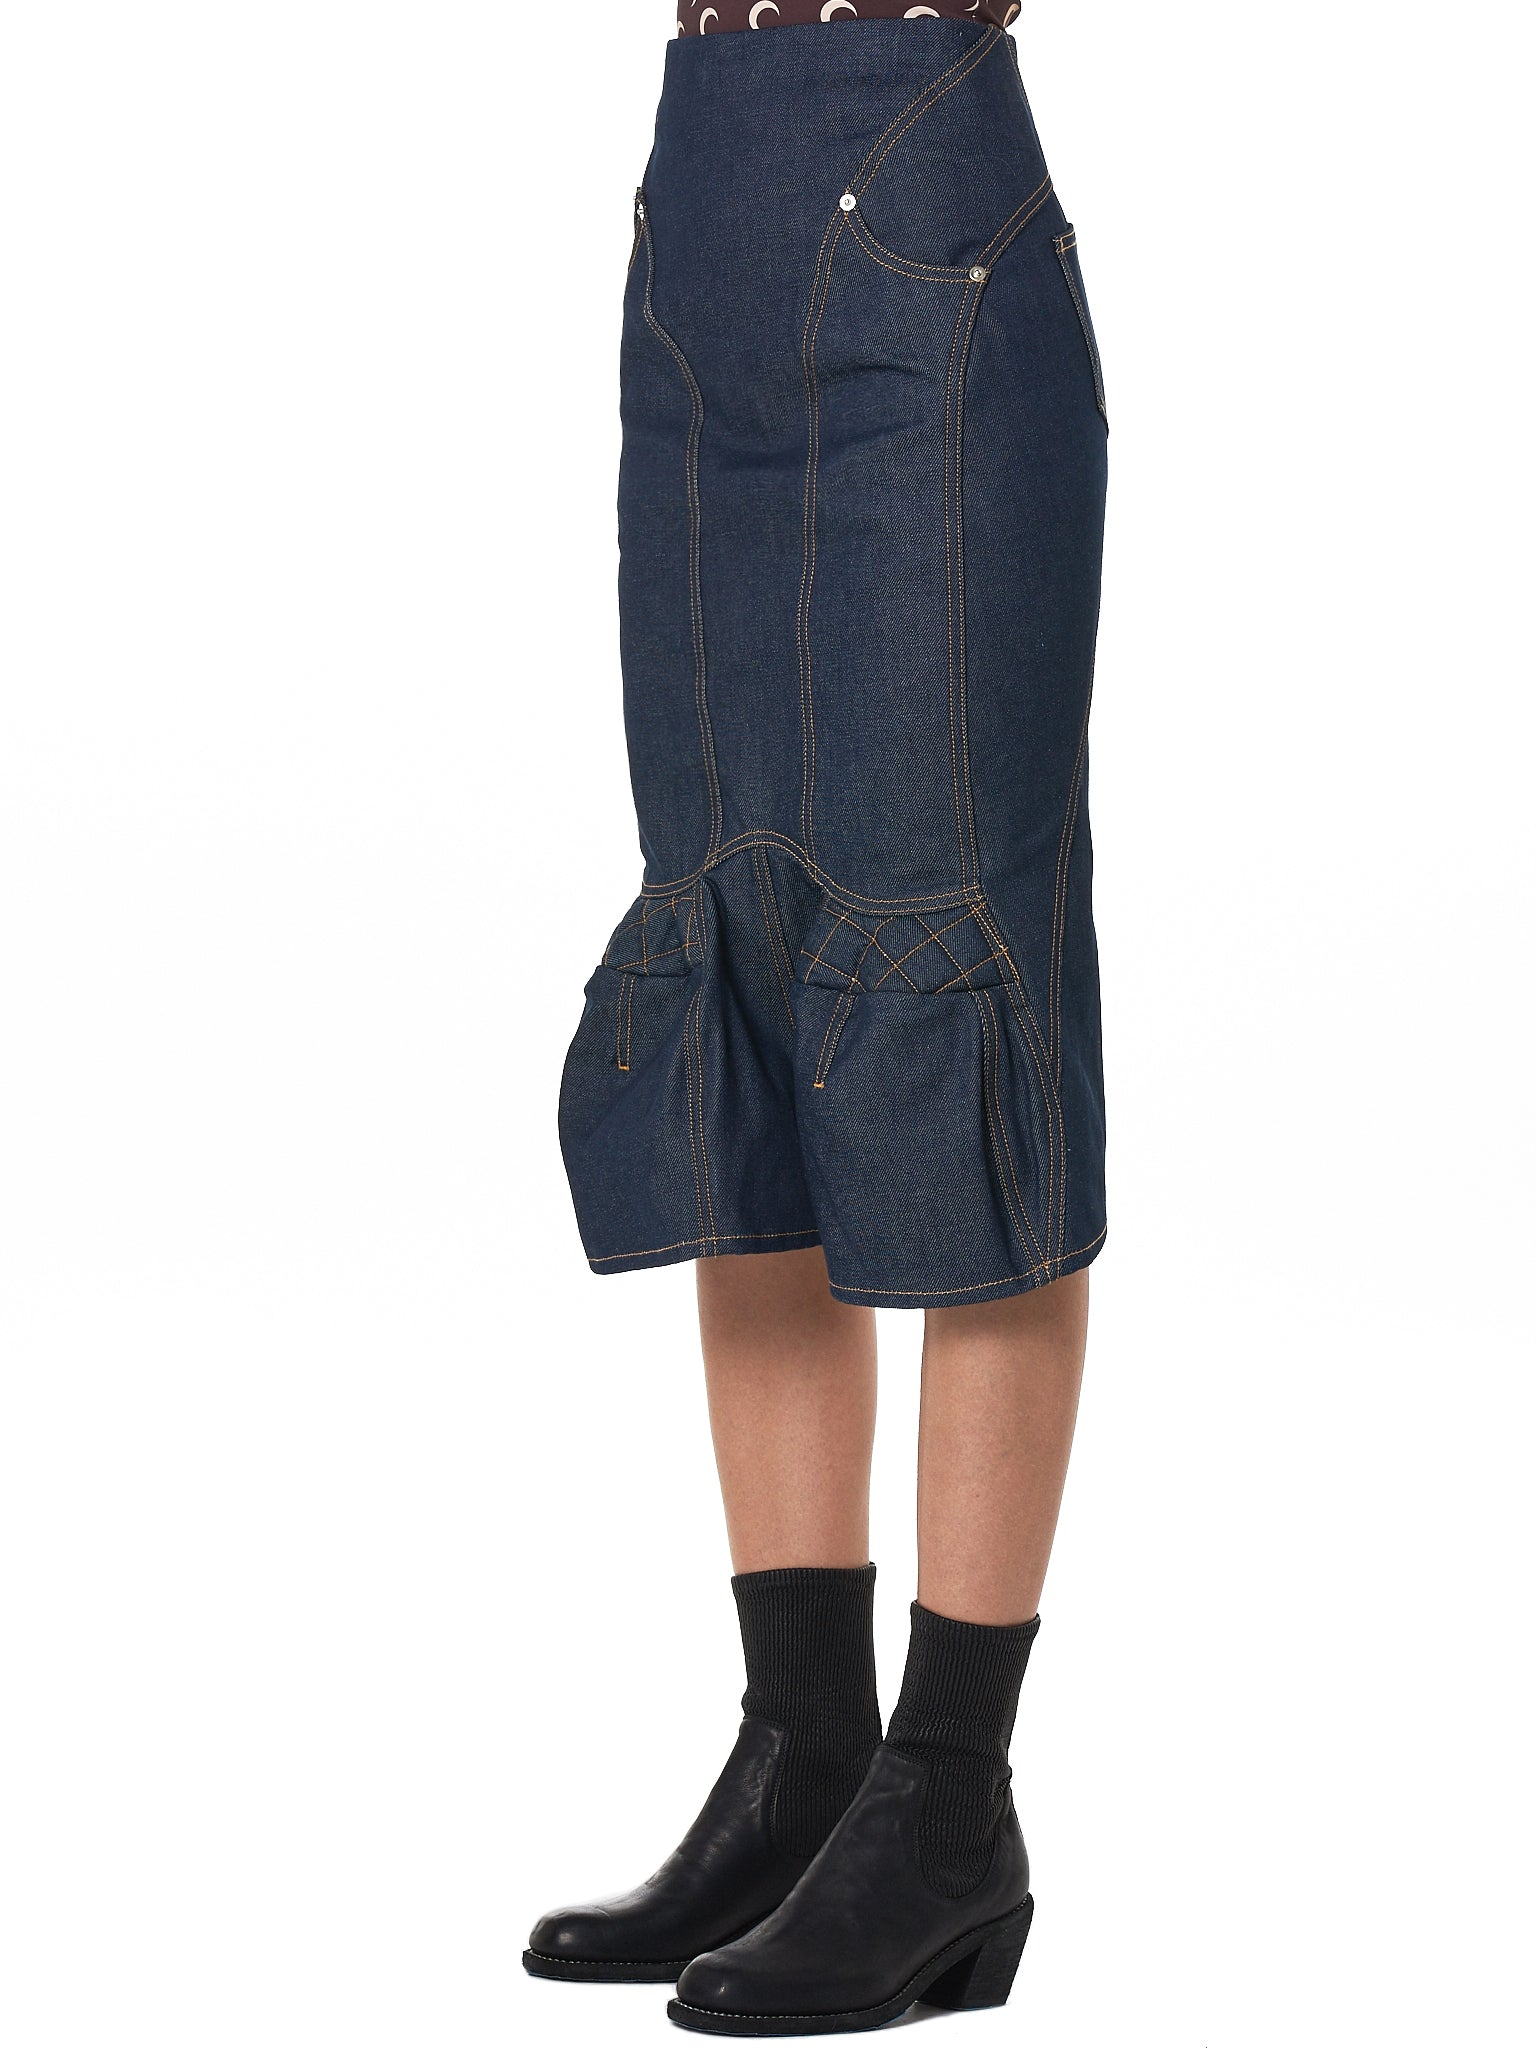 Marine Serre Denim Skirt - Hlorenzo Side